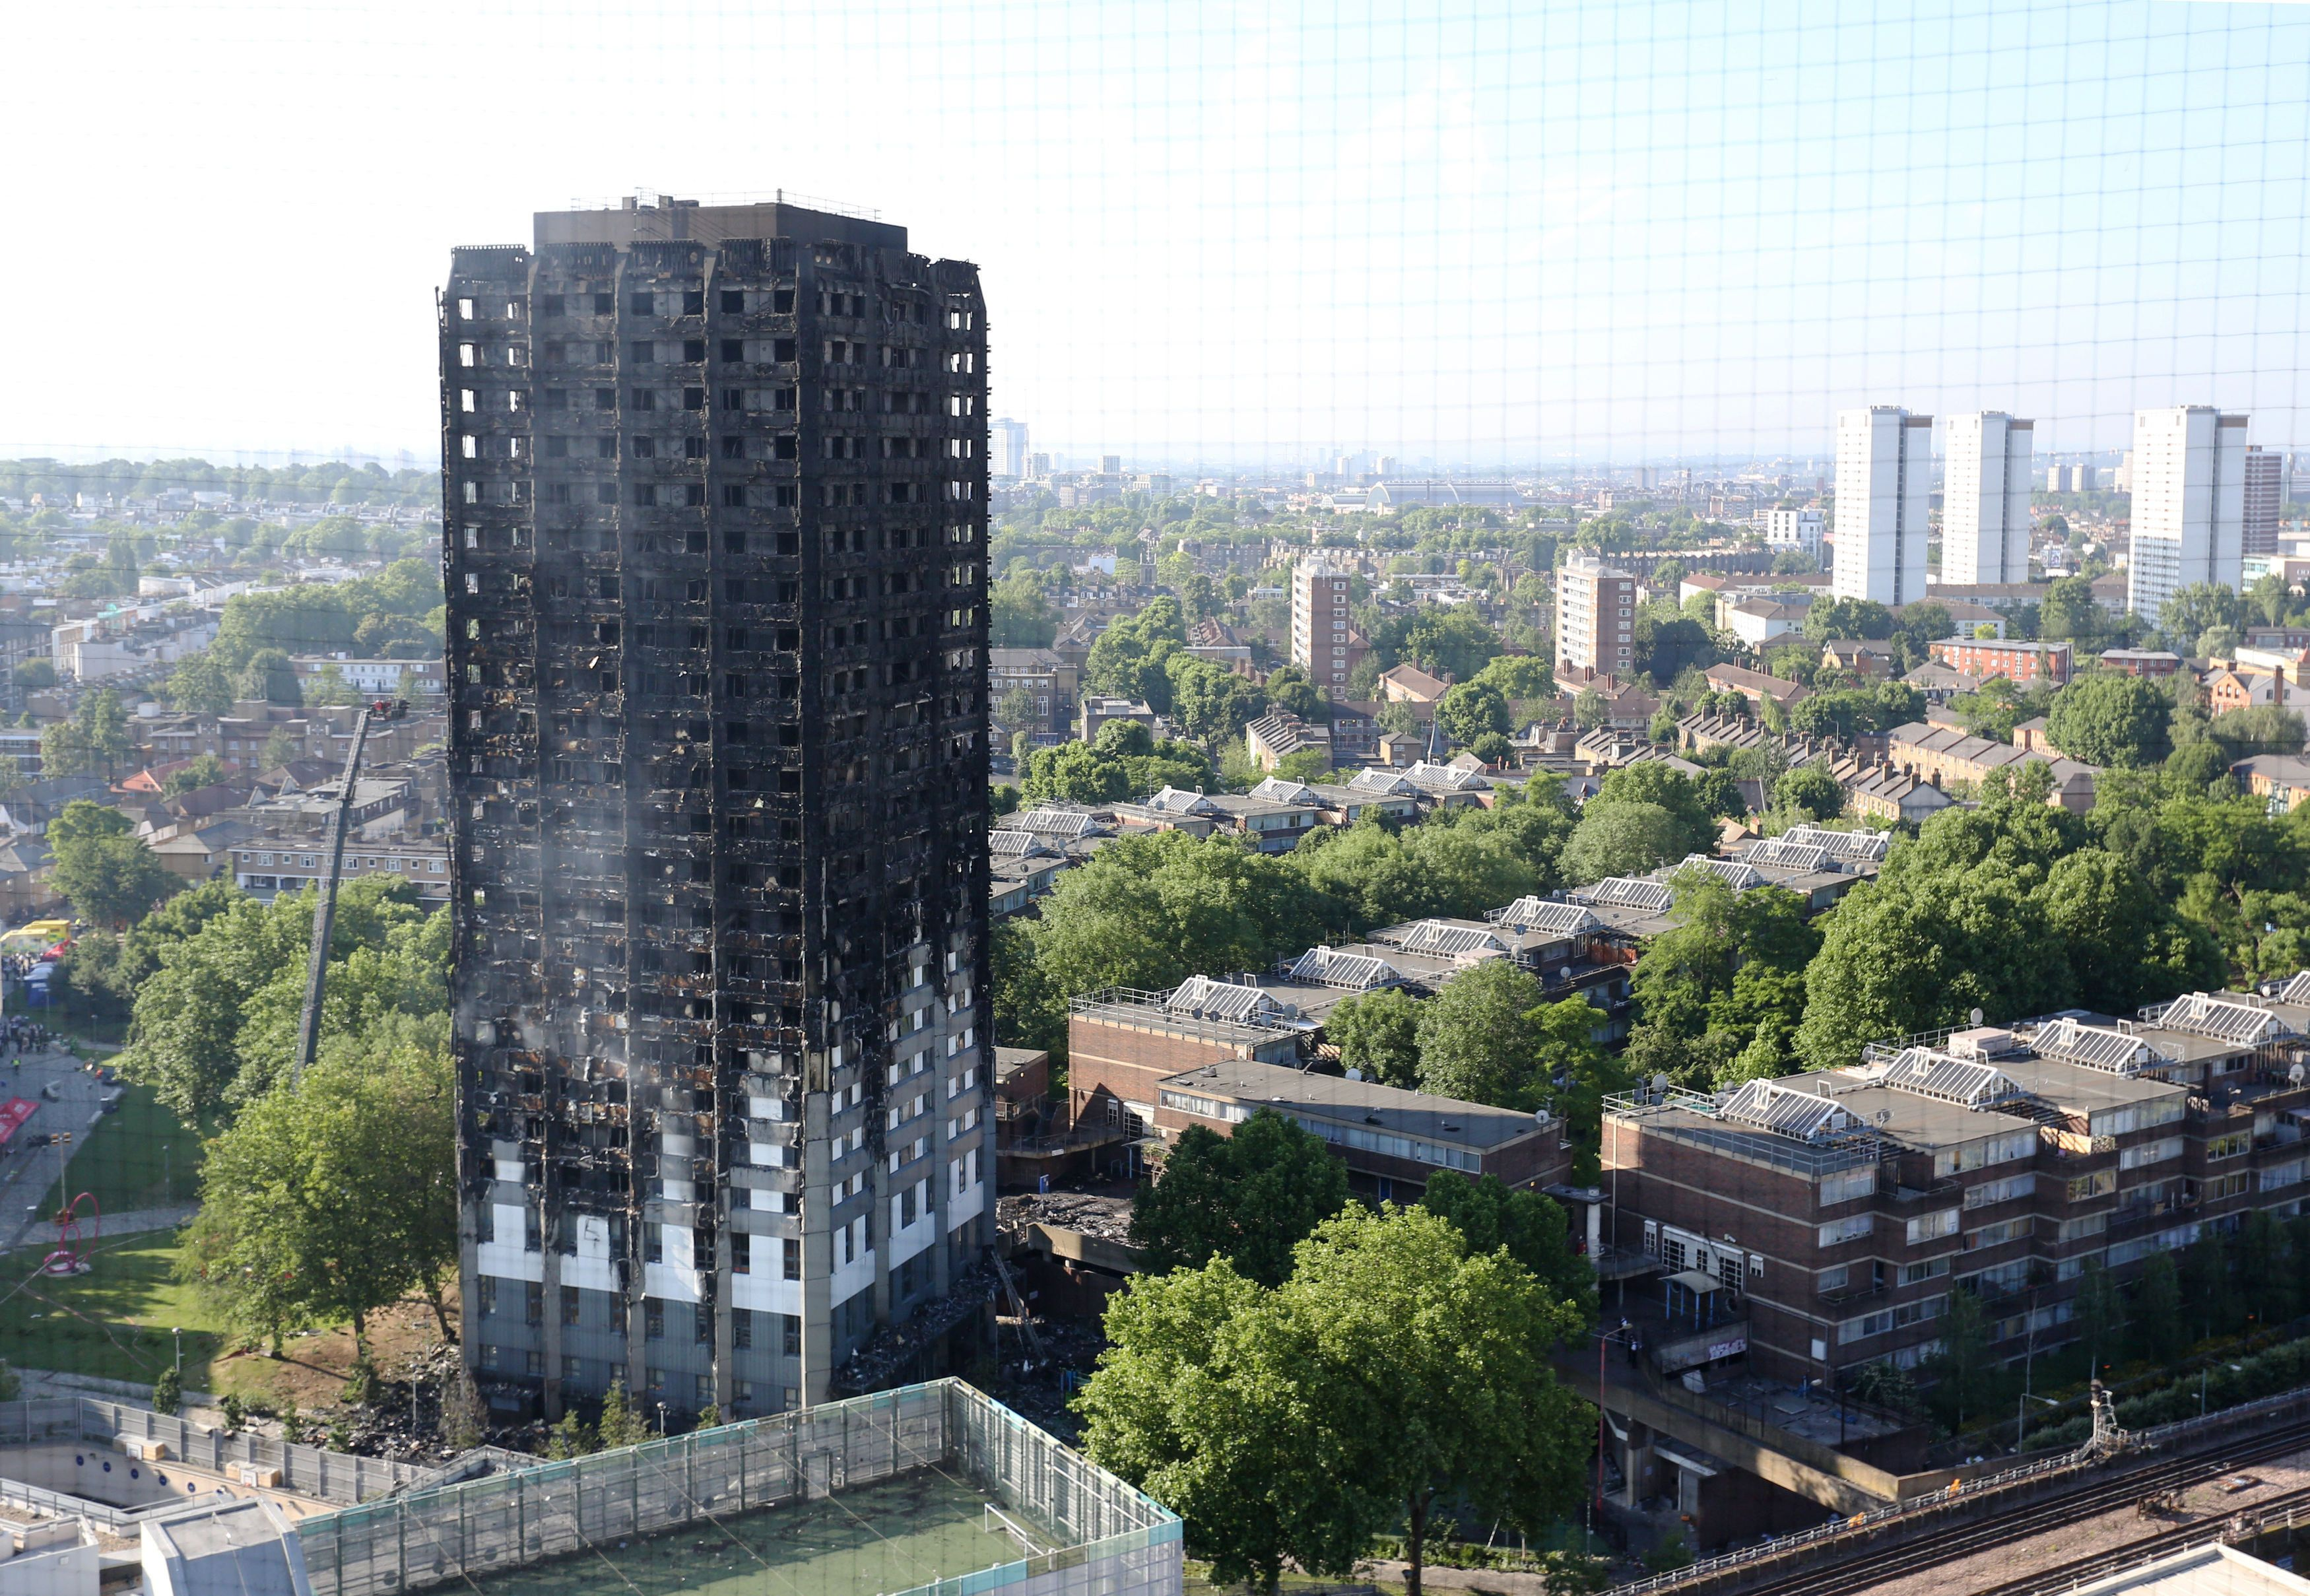 Grenfell Inquiry to examine authorities' response and 'adequacy' of fire regulations